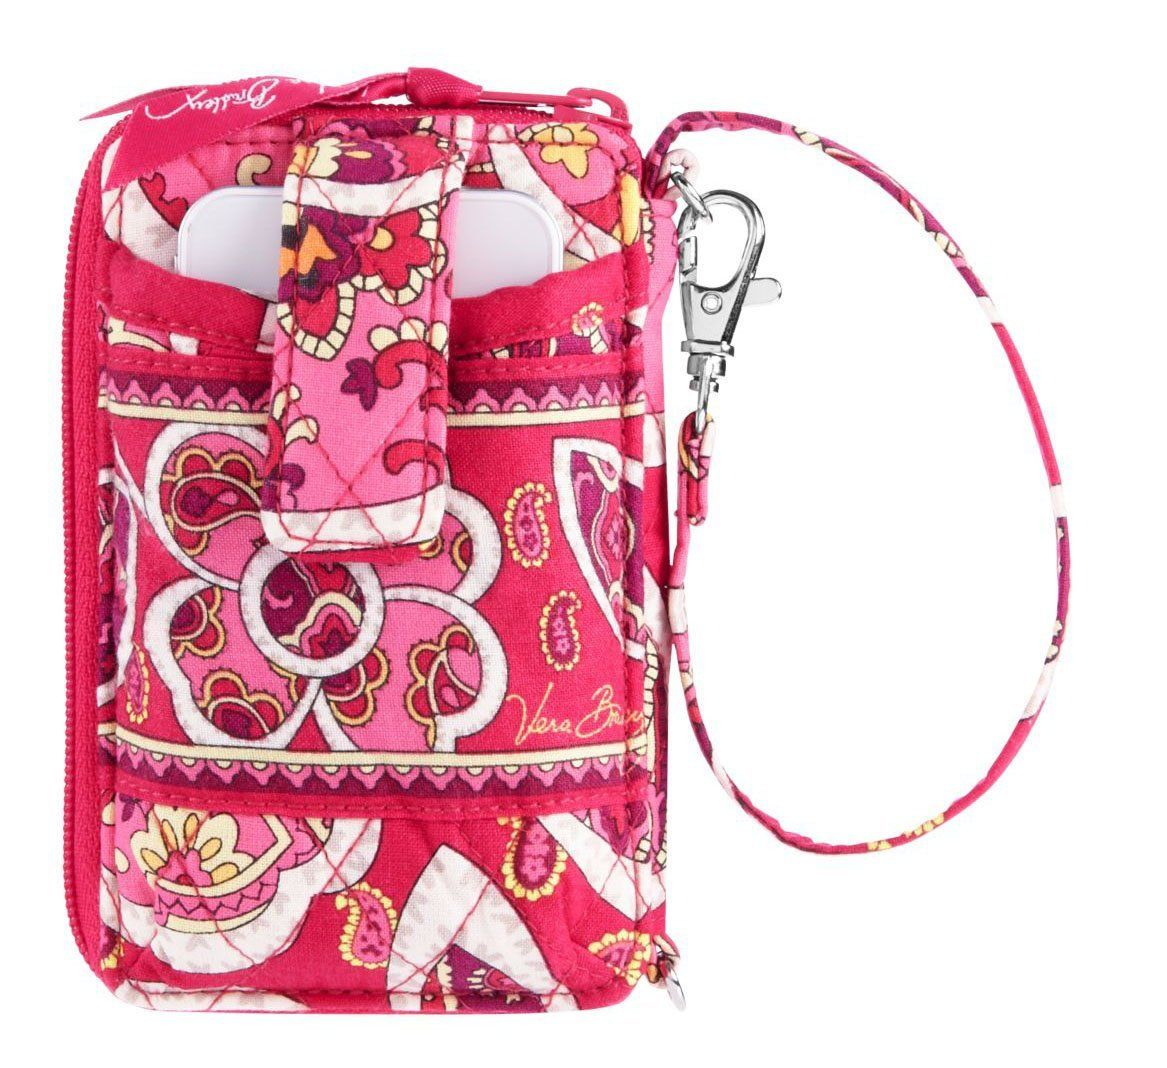 Vera Bradley Wristlets and Wallets-Perfect For Your Wardrobe